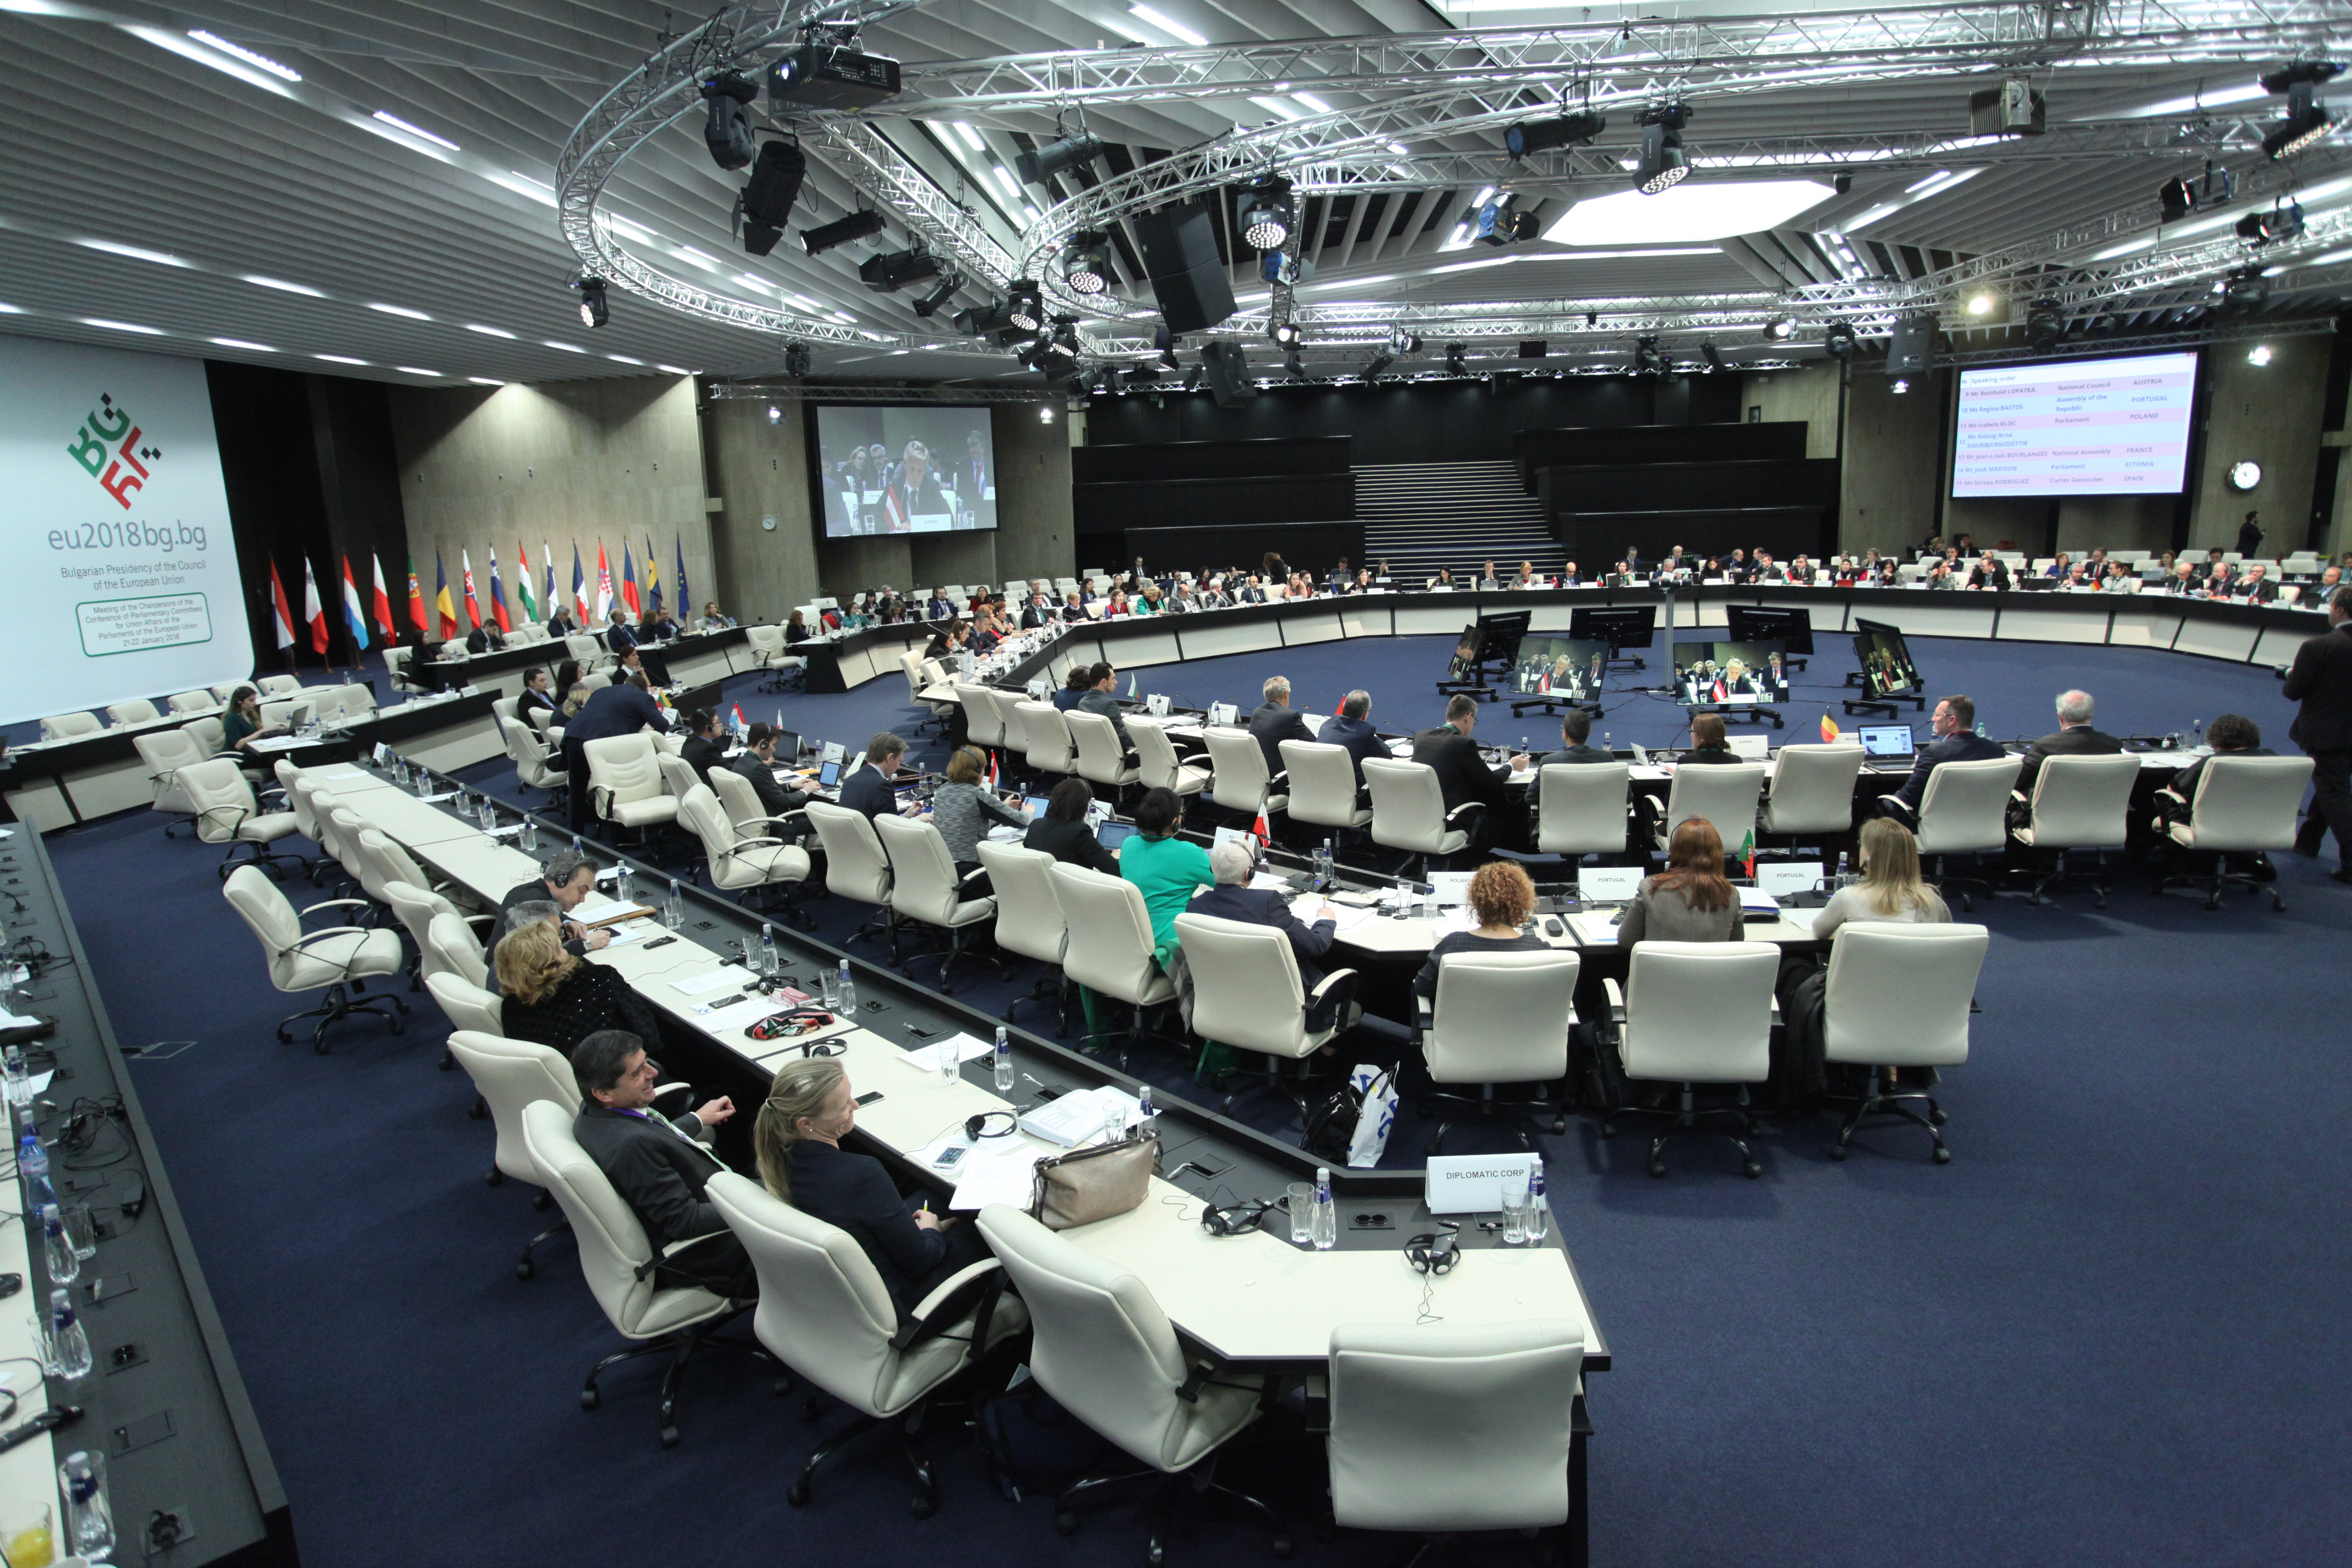 The role of European macro-regional strategies for sustainable development, security and stability has been discussed by the chairpersons of the Committees for Union Affairs of the Parliaments of the European Union in Sofia.